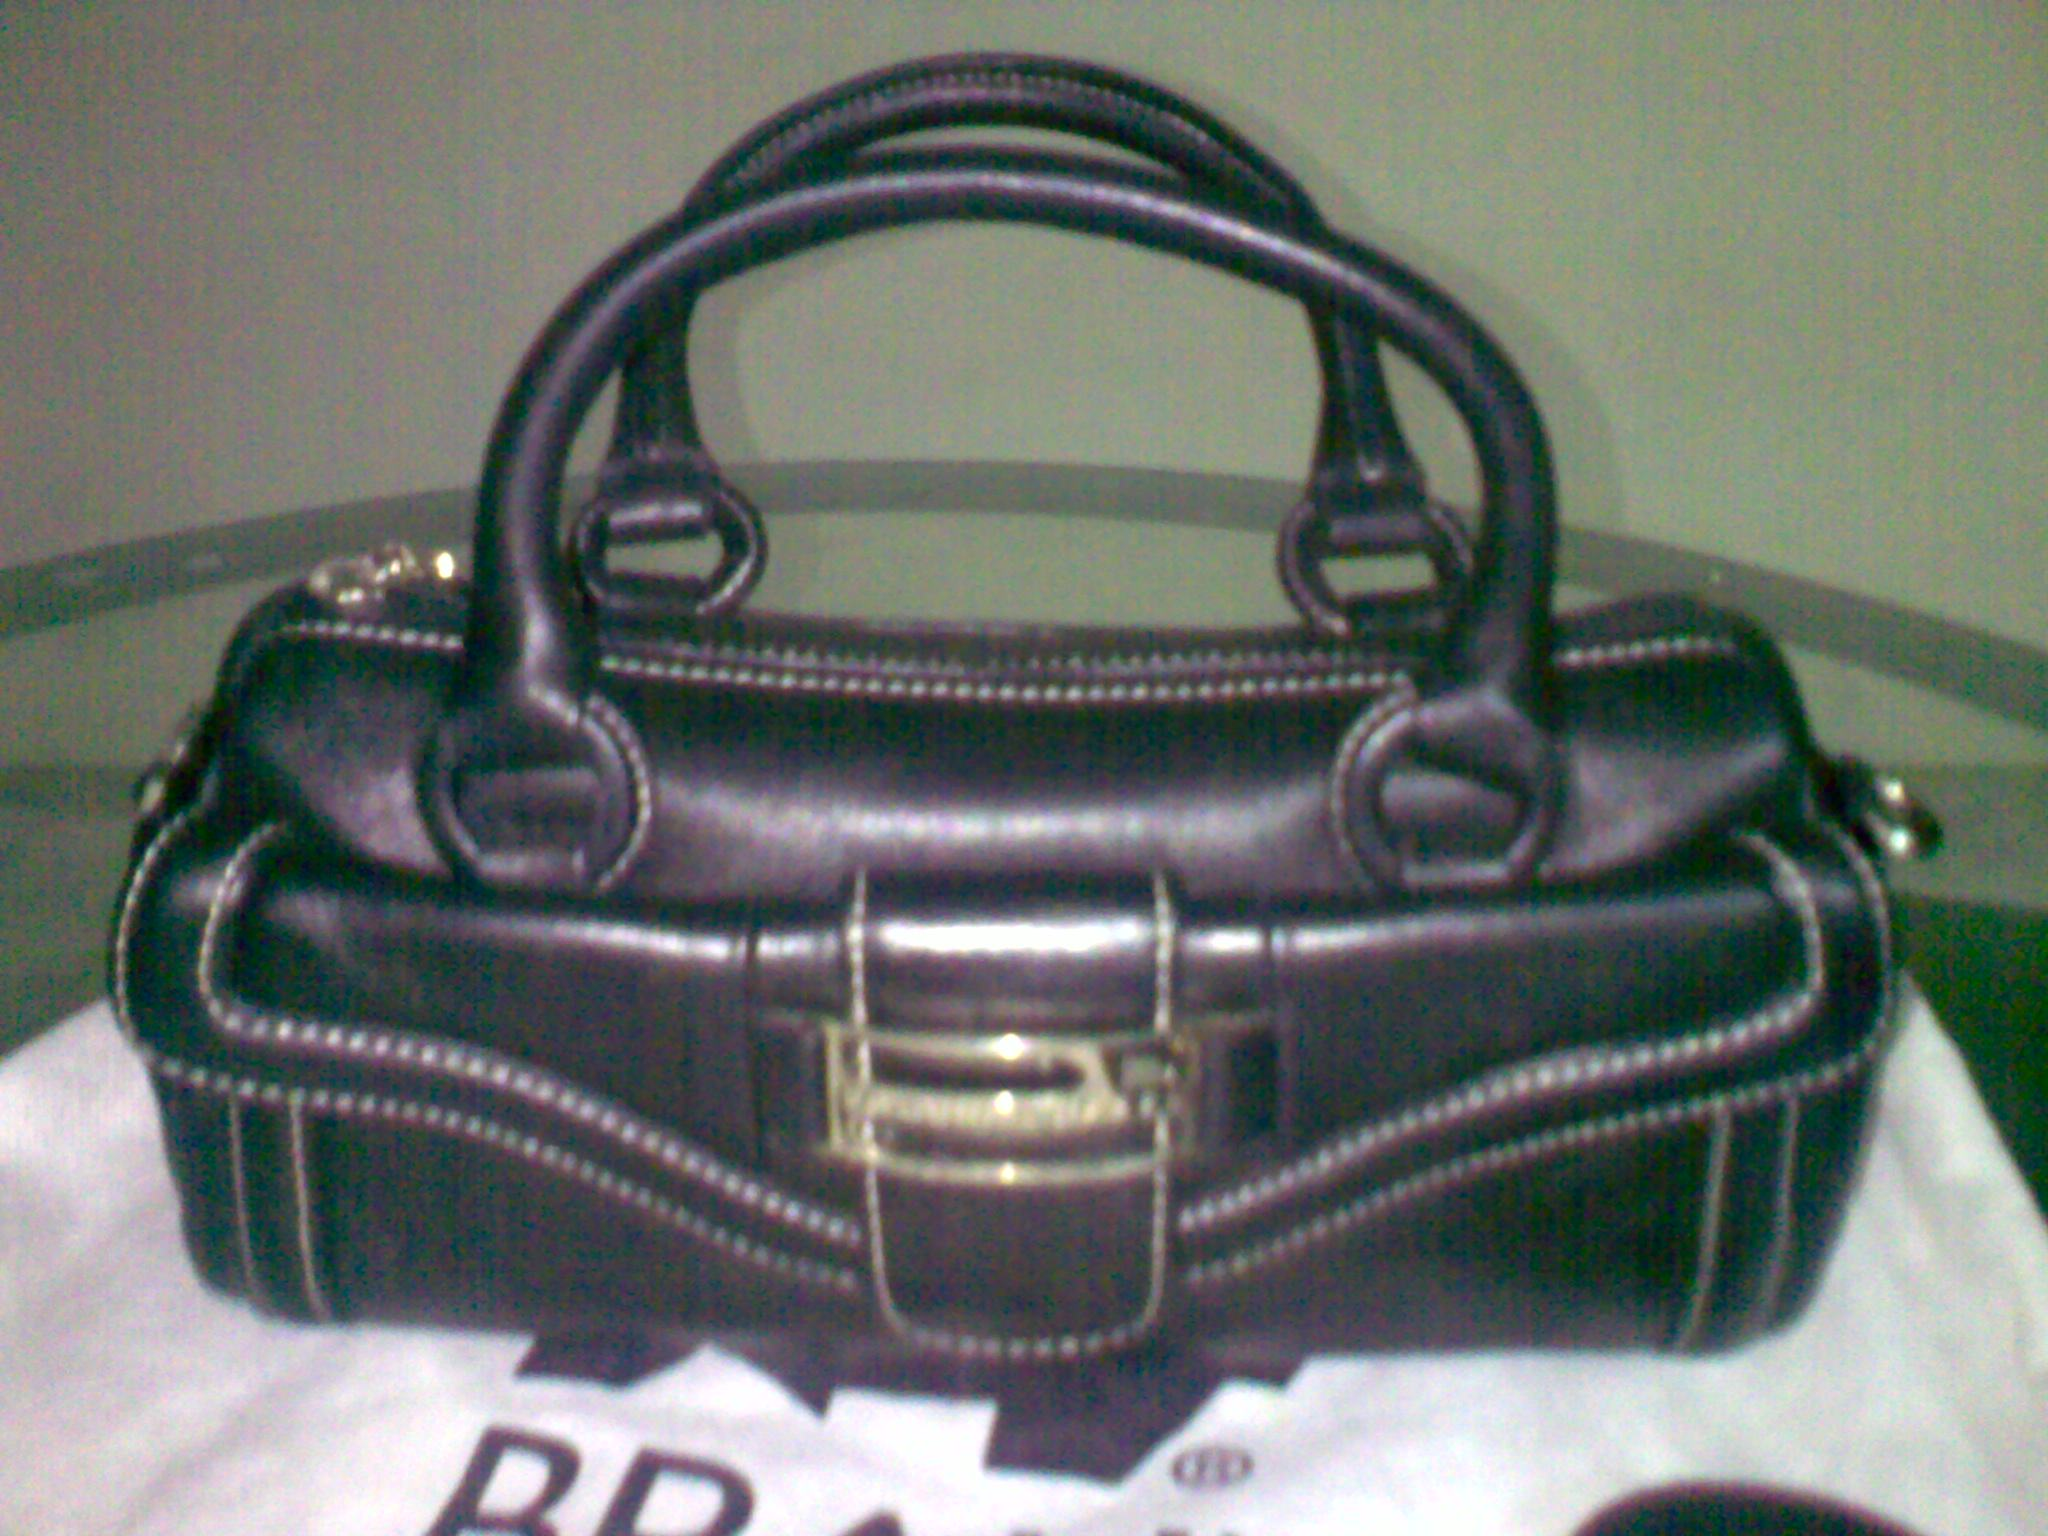 FOR SALE: Braun Buffel Handbag